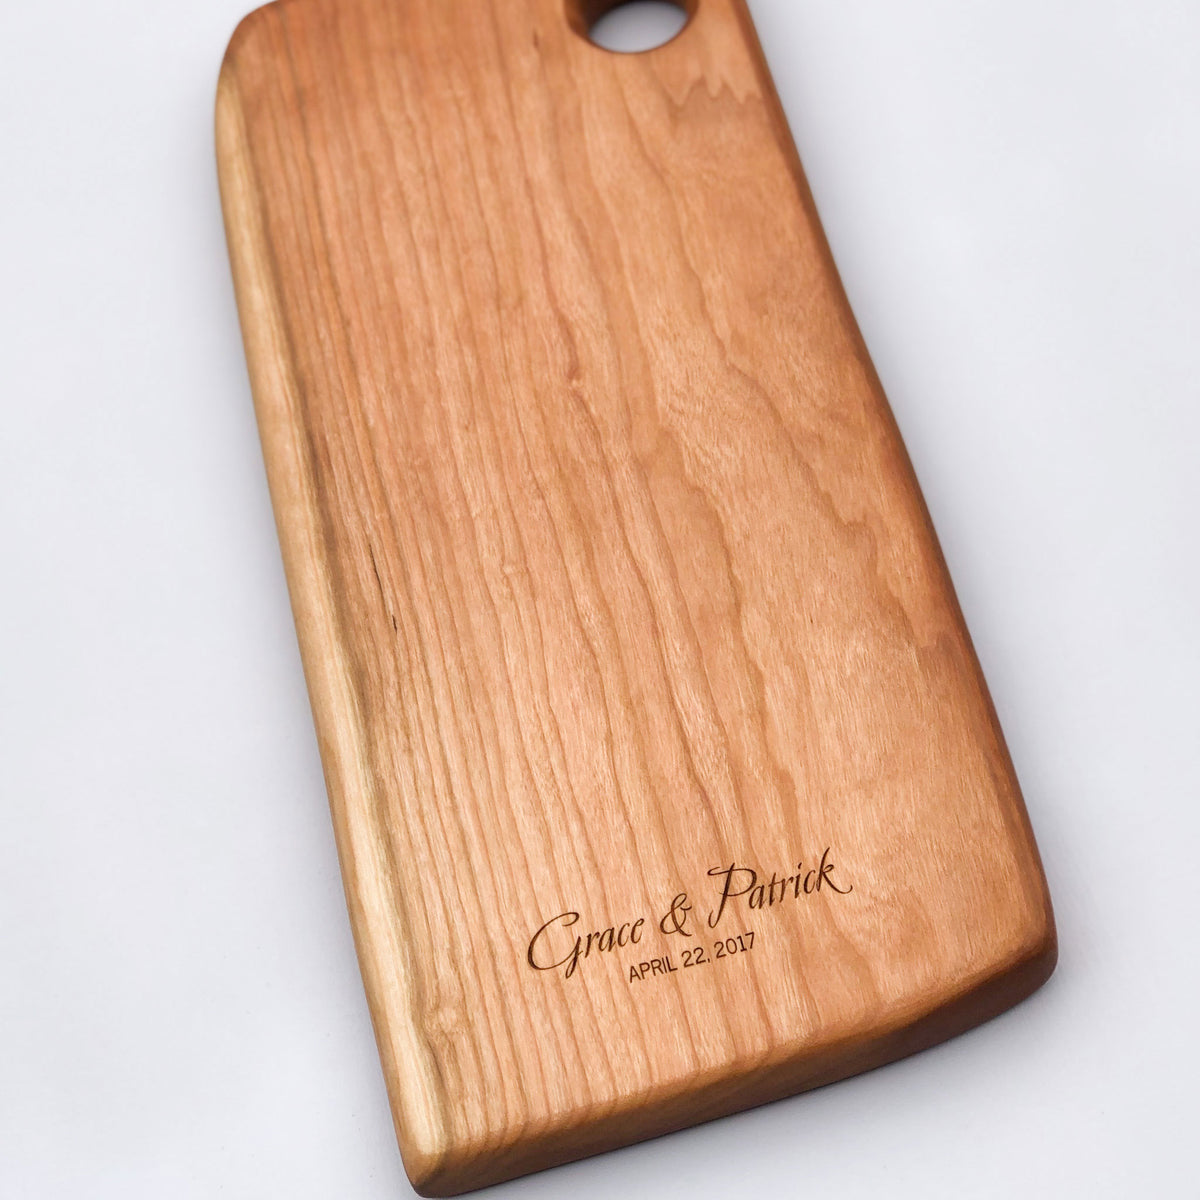 Engraved Arbor Novo cherry serving board - Grace & Patrick